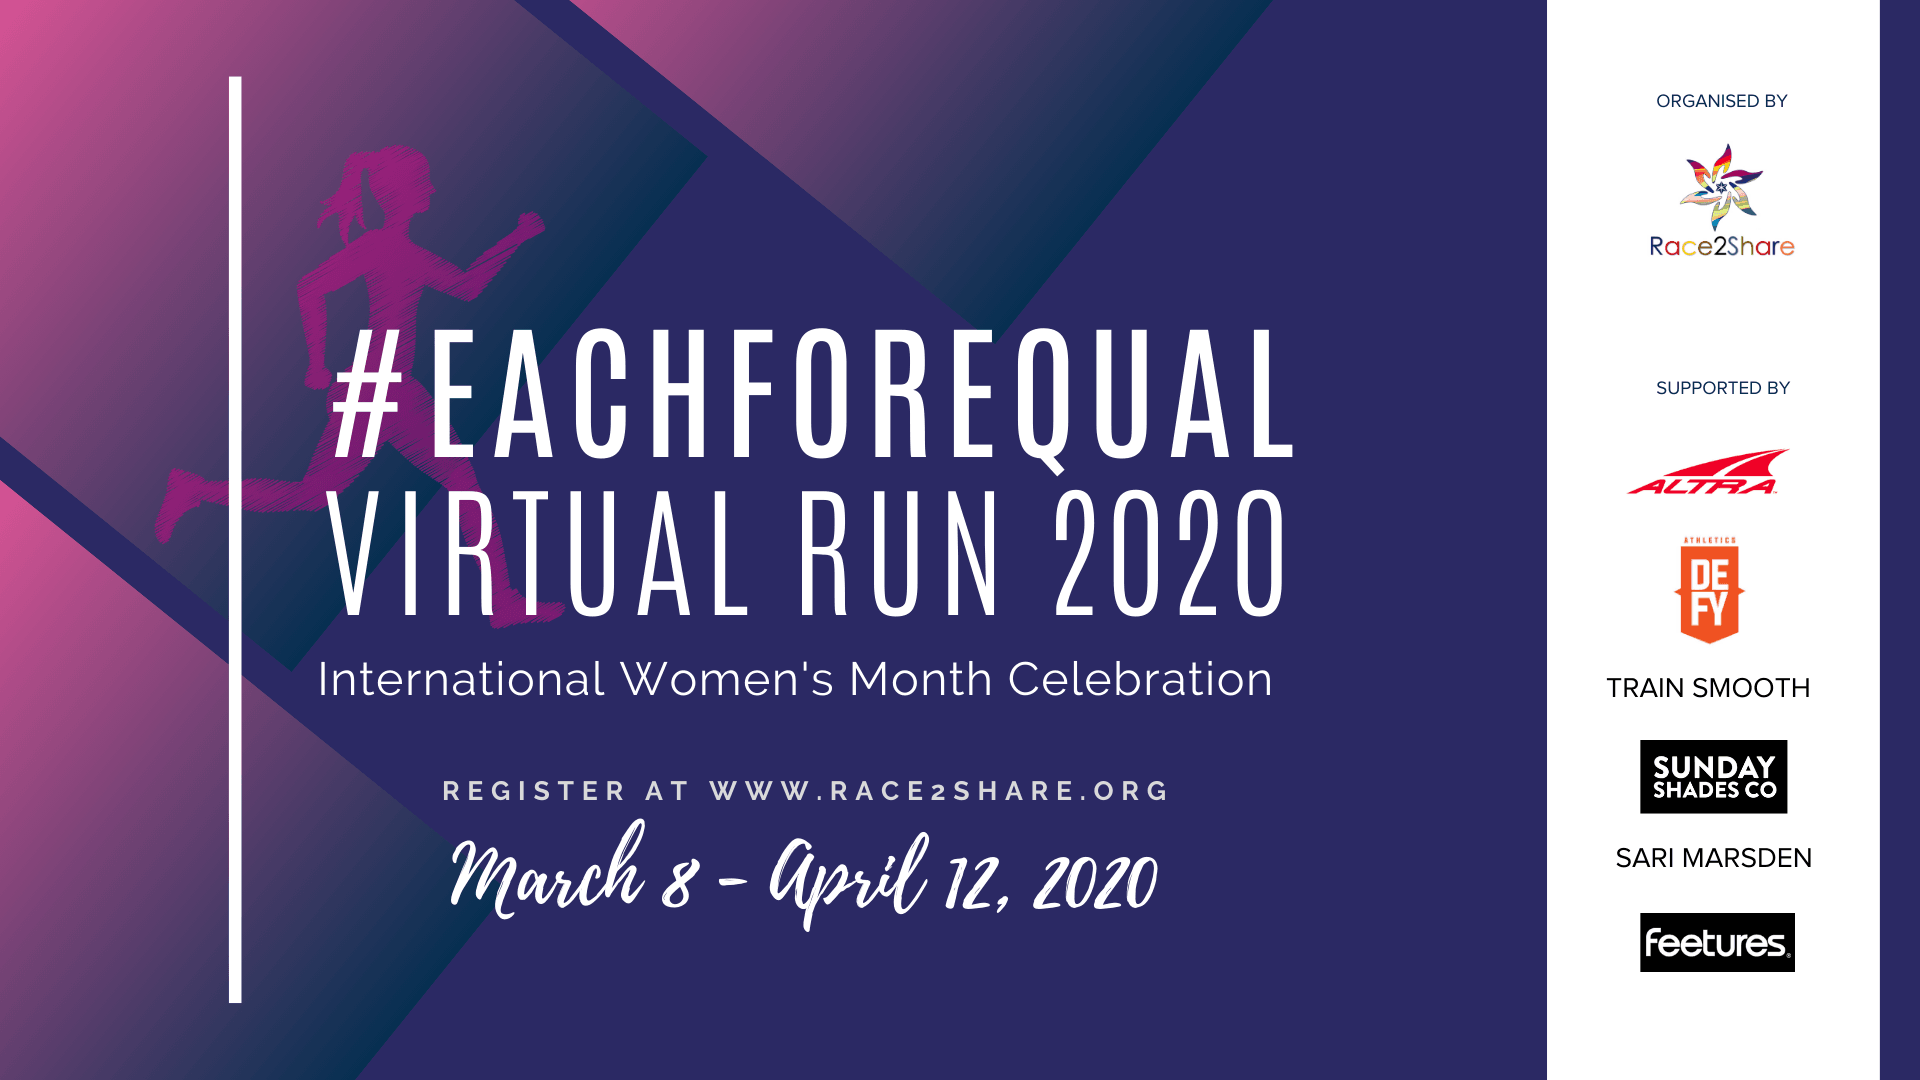 Logo of EachForEqual Virtual Run 2020